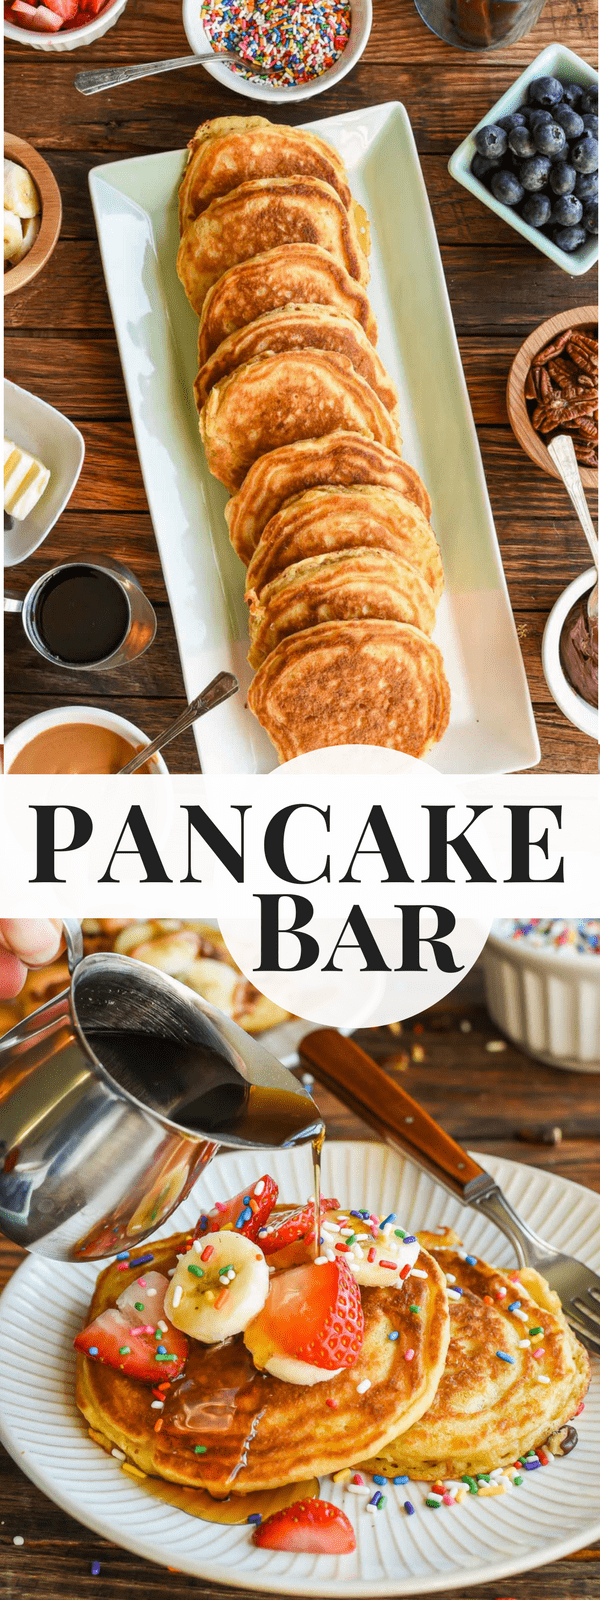 Learn how to throw an epic Pancake Bar Party with this easy guide for make ahead buttermilk pancakes and loads of fun toppings!